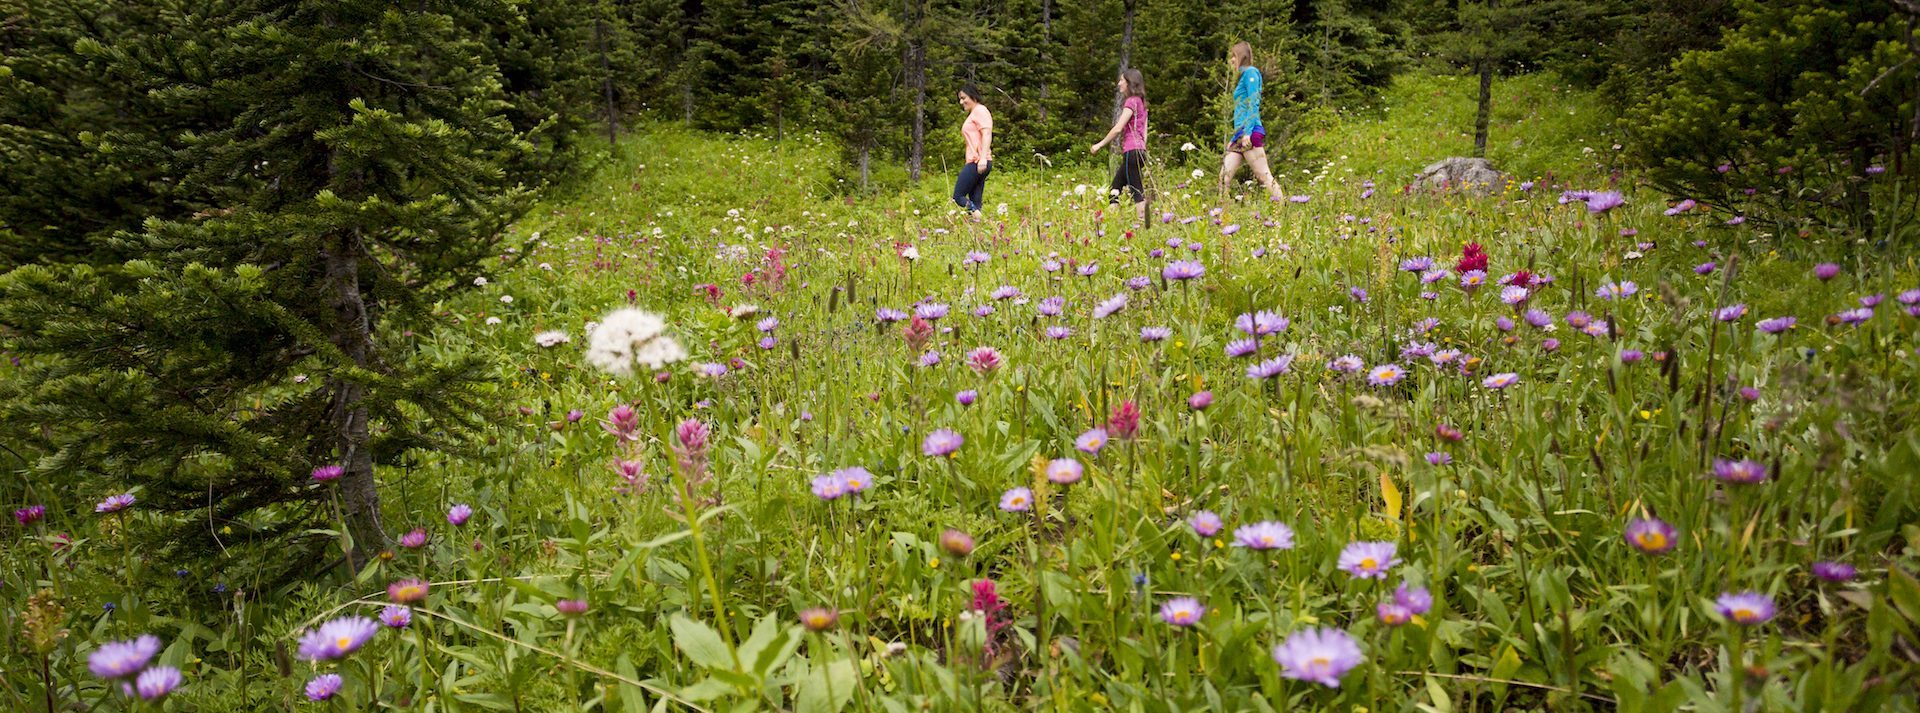 Alpine Wildflowers, Sunshine Meadows